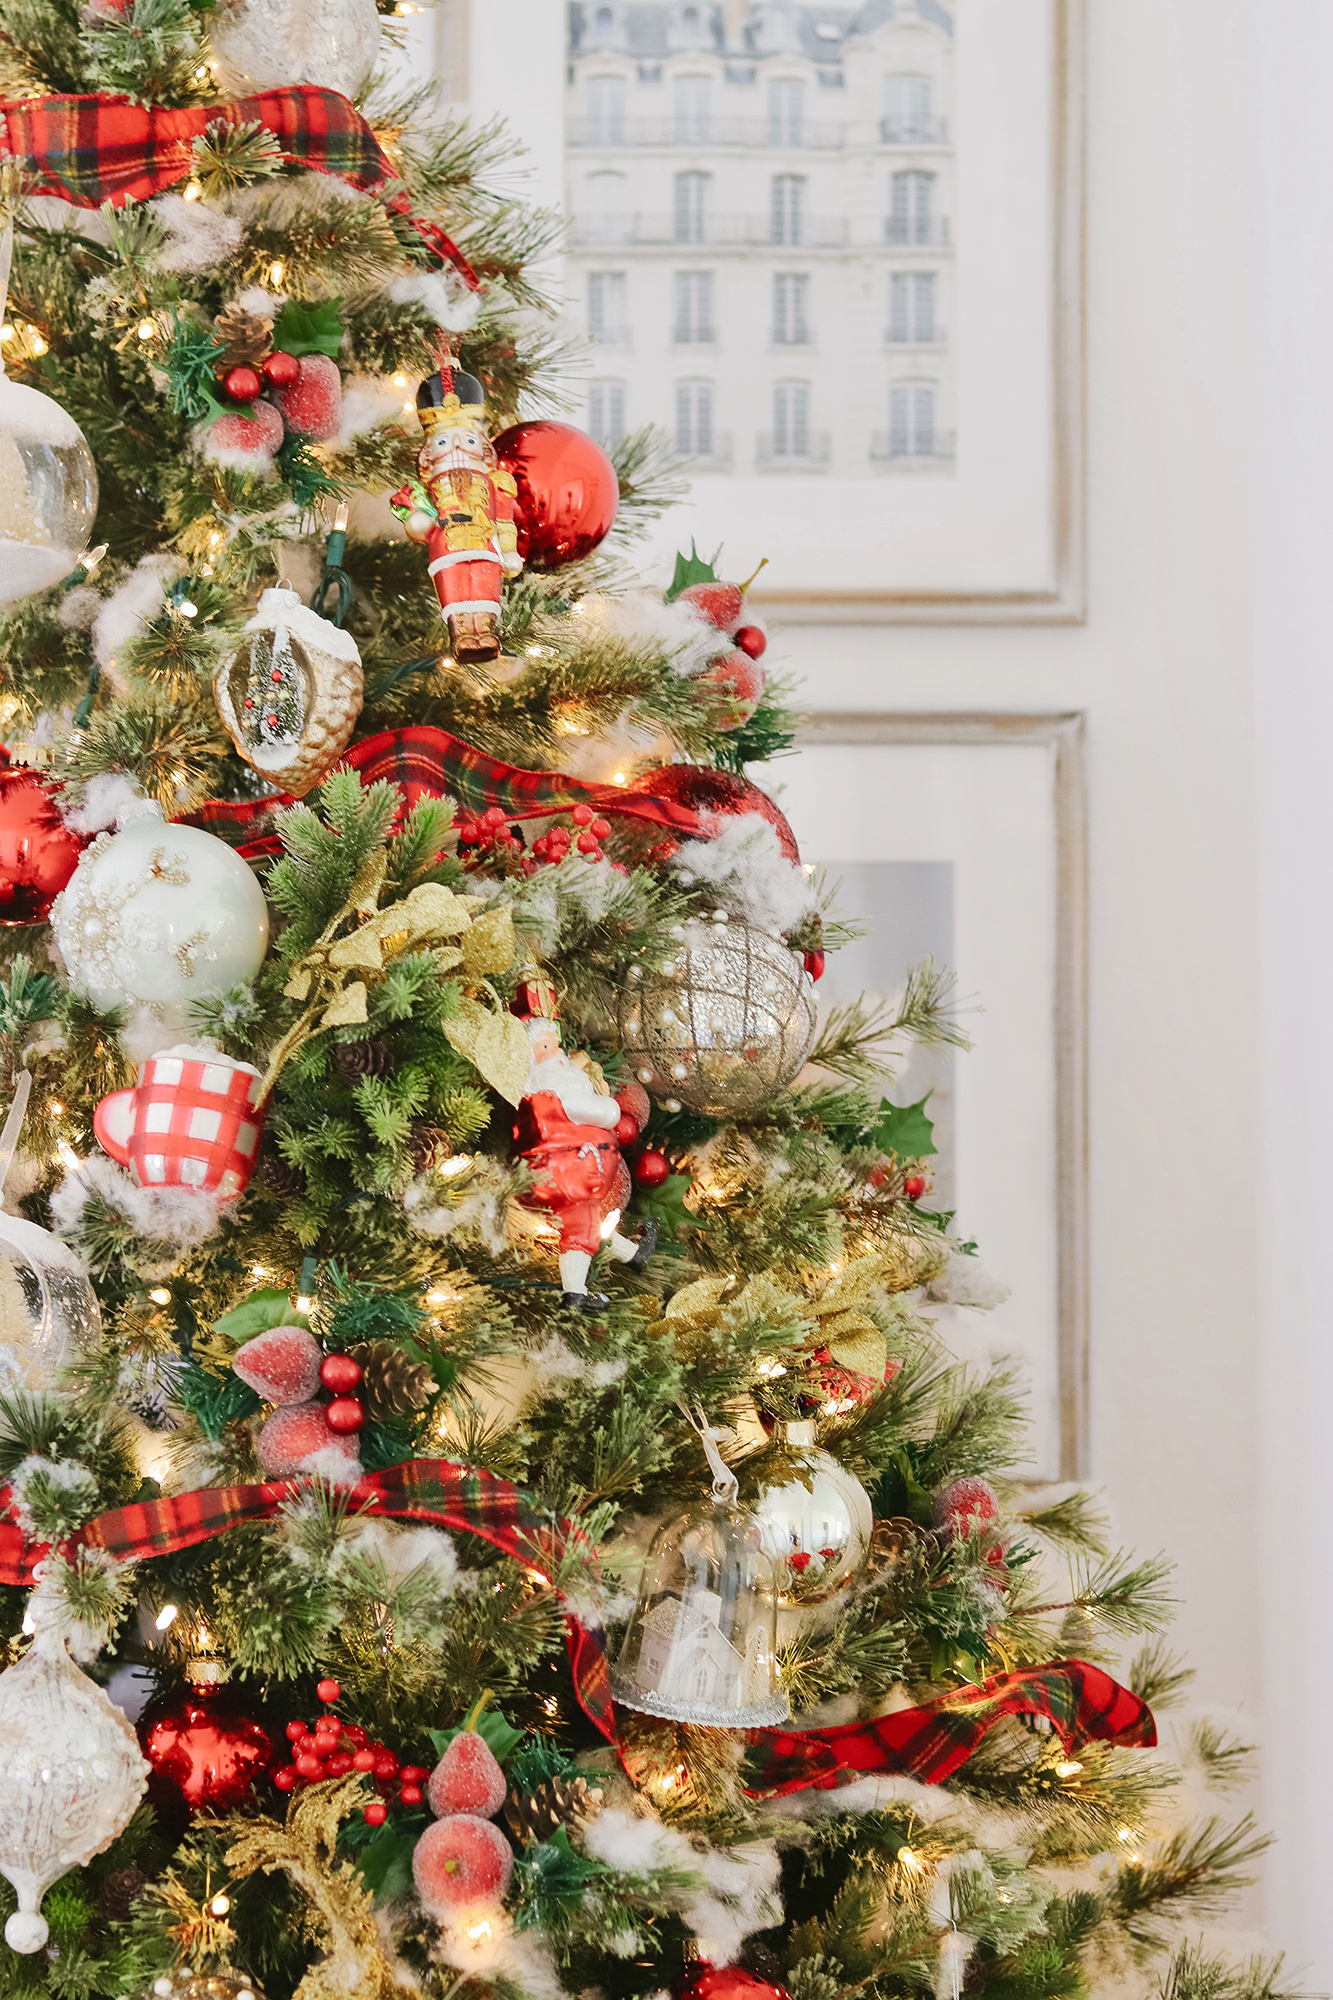 Red & White New England Style Christmas Tree - Traditional yet modern with pops of red, white and gold. Affordable and elegant for 2019 holiday decor